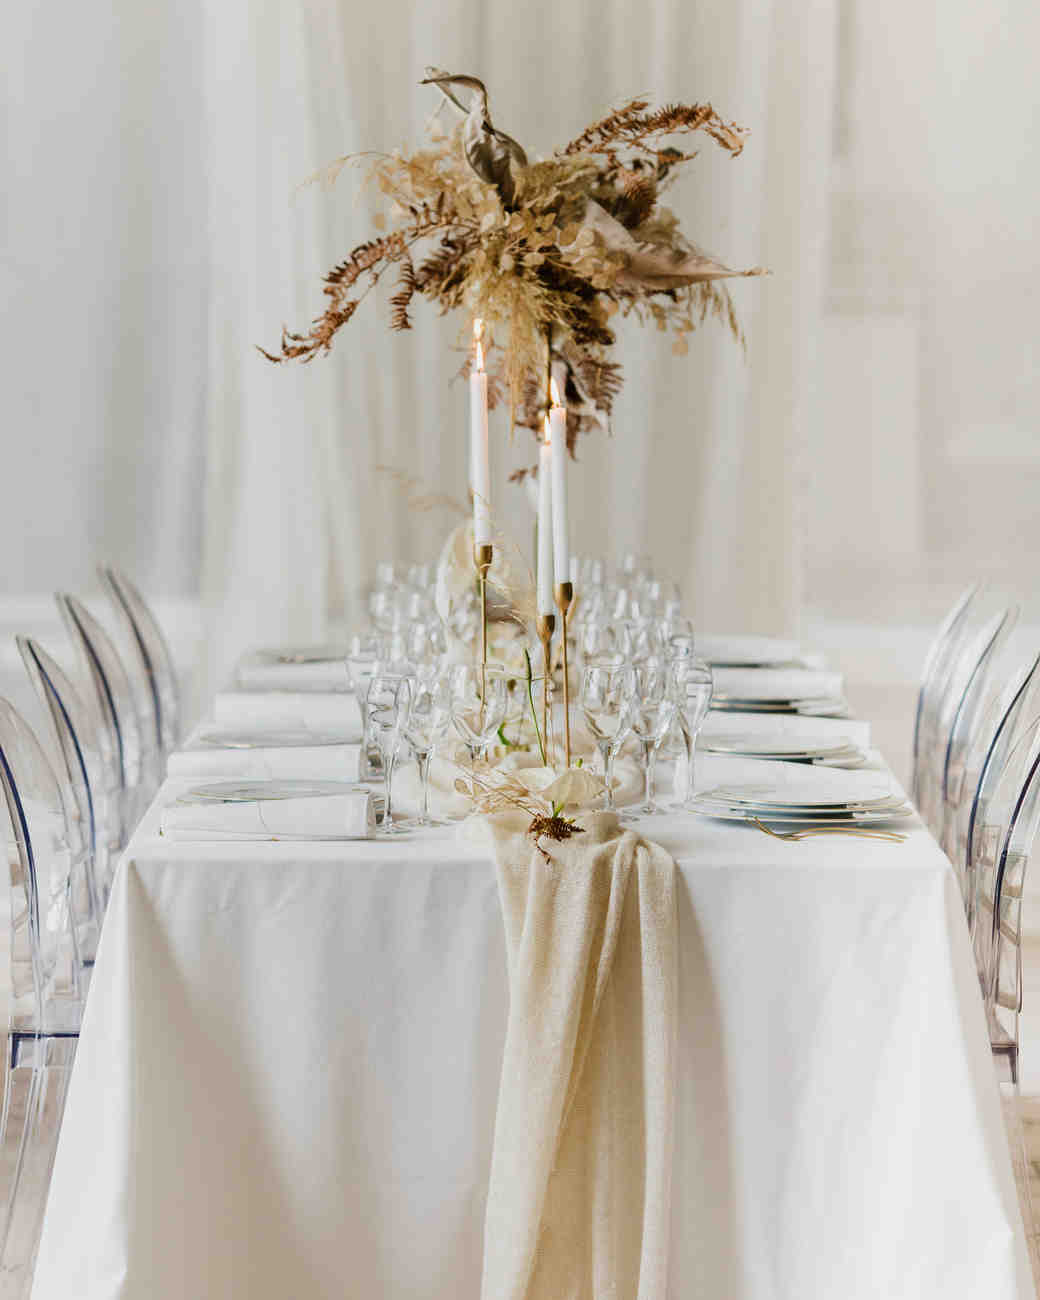 Gold Wedding Centerpiece Decorations: 23 Non-Floral Wedding Centerpiece Ideas